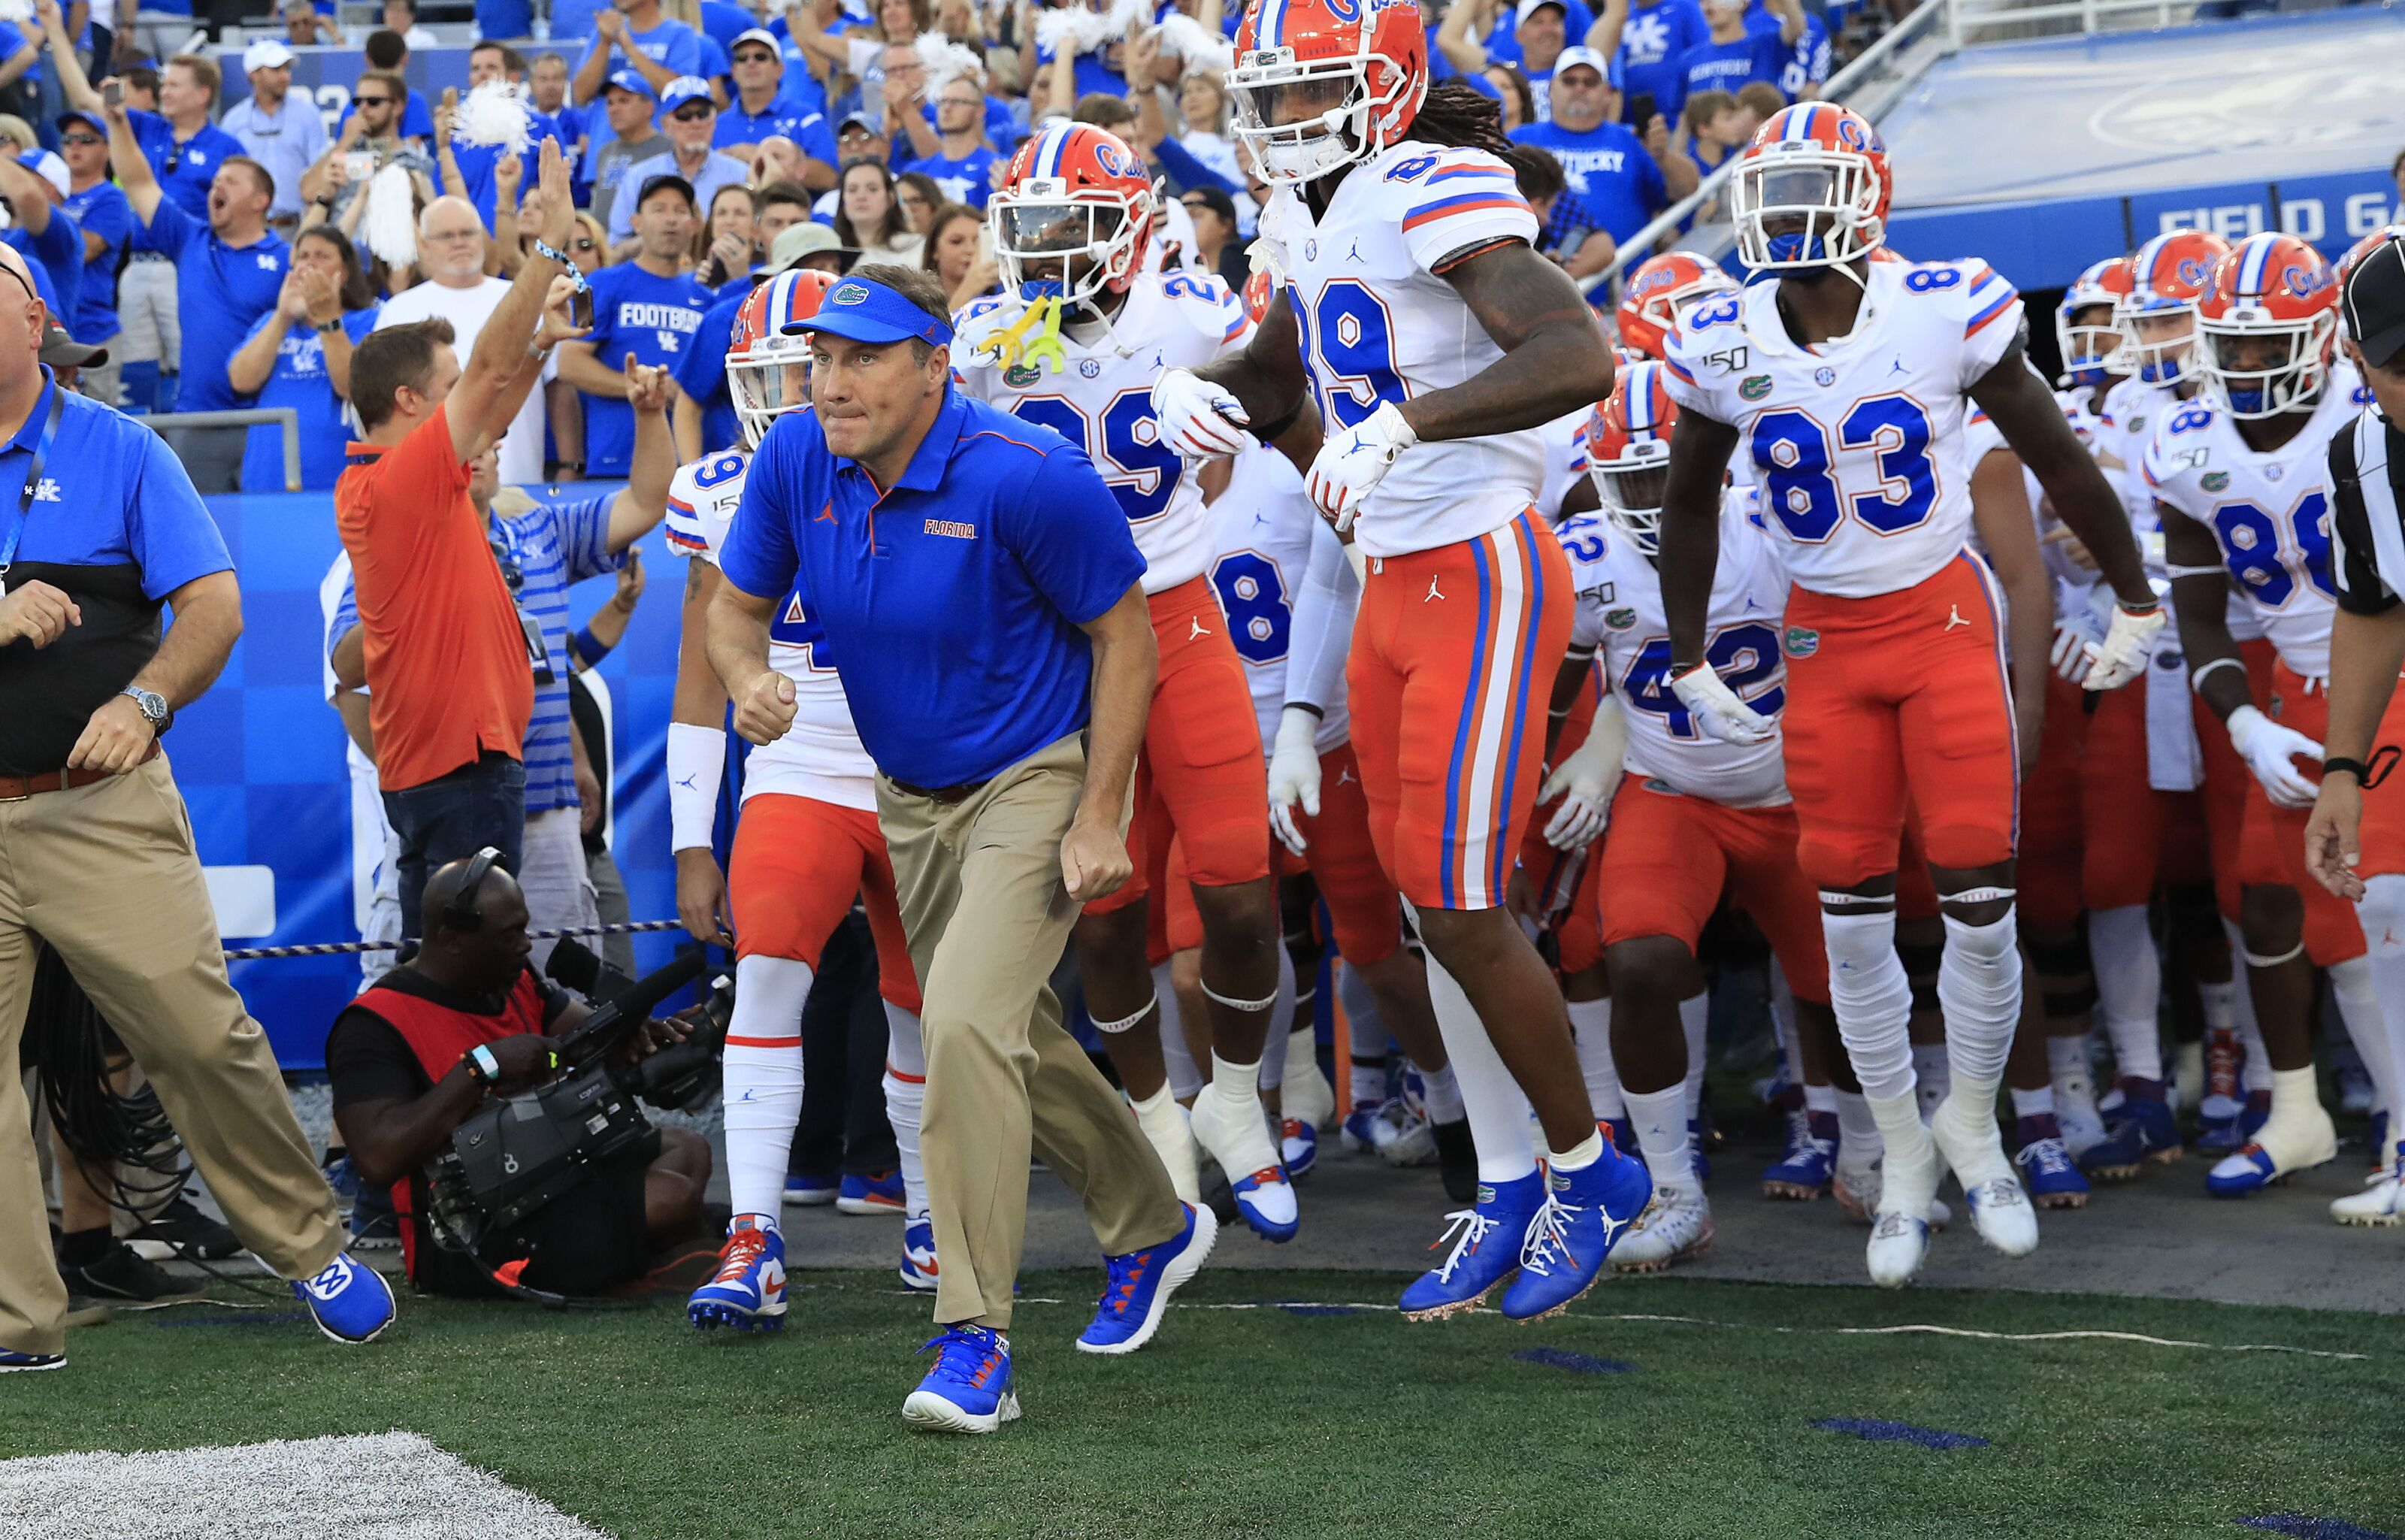 Florida football: All you need to know for today's game with Tennessee